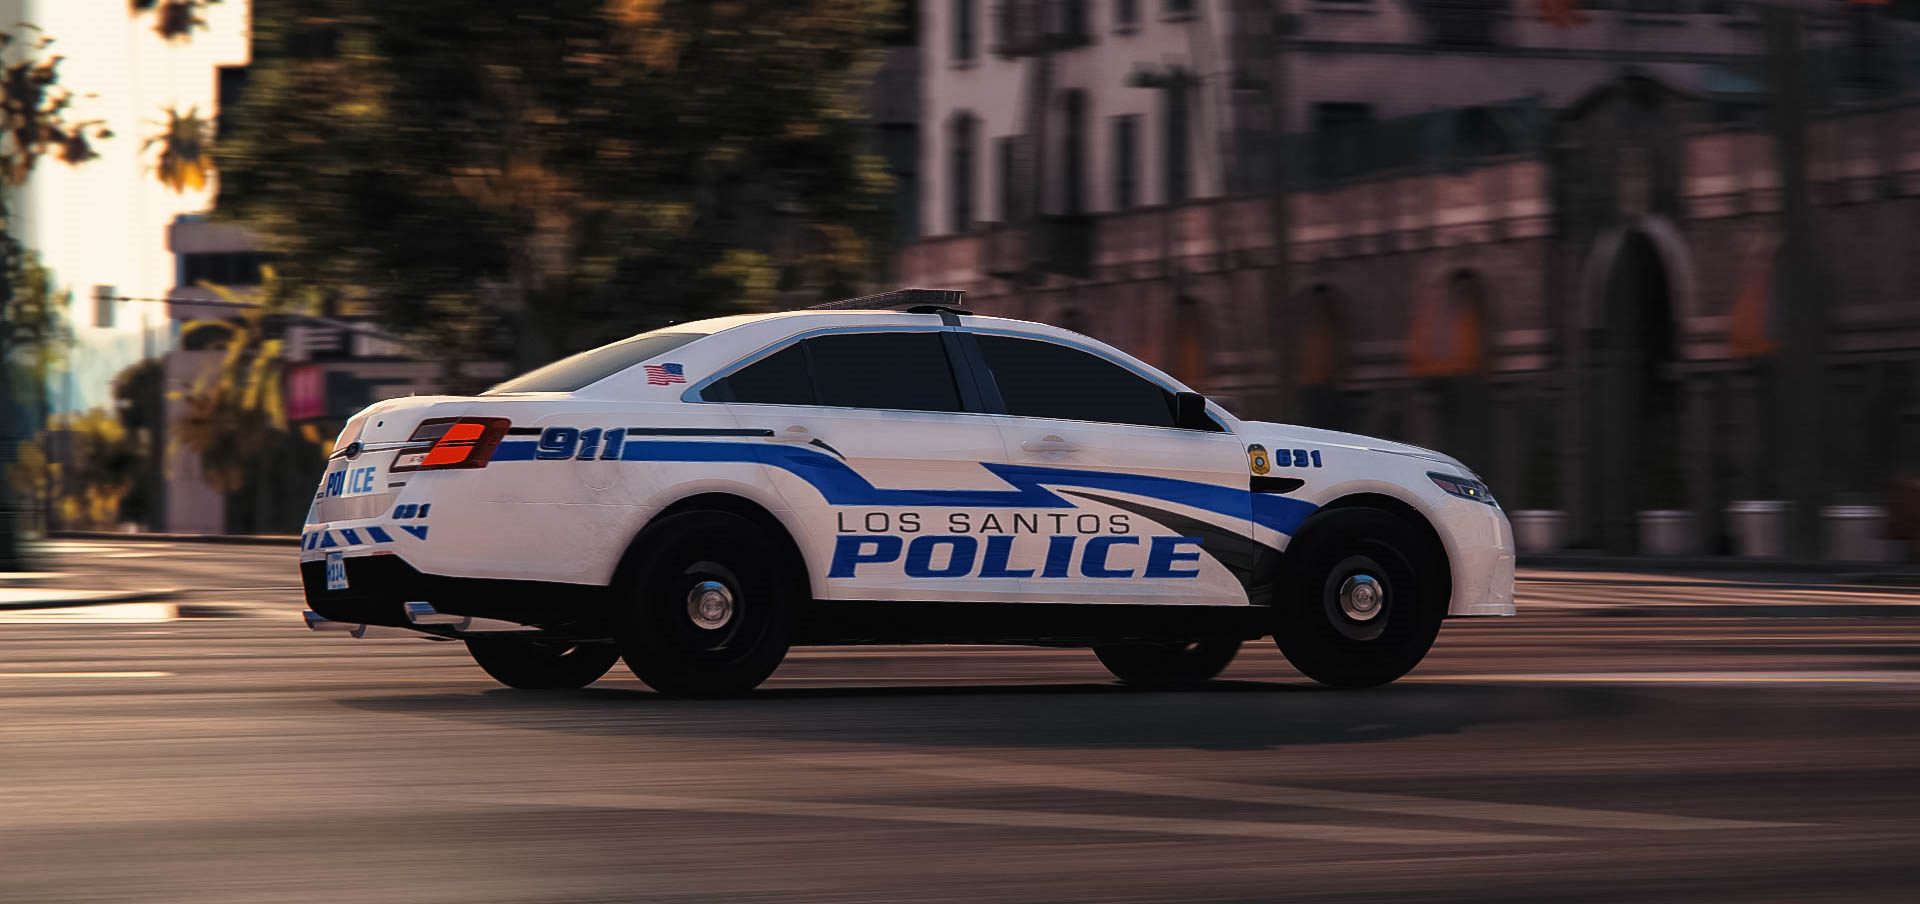 4K] Los Santos Police department pack (Timmonsville South